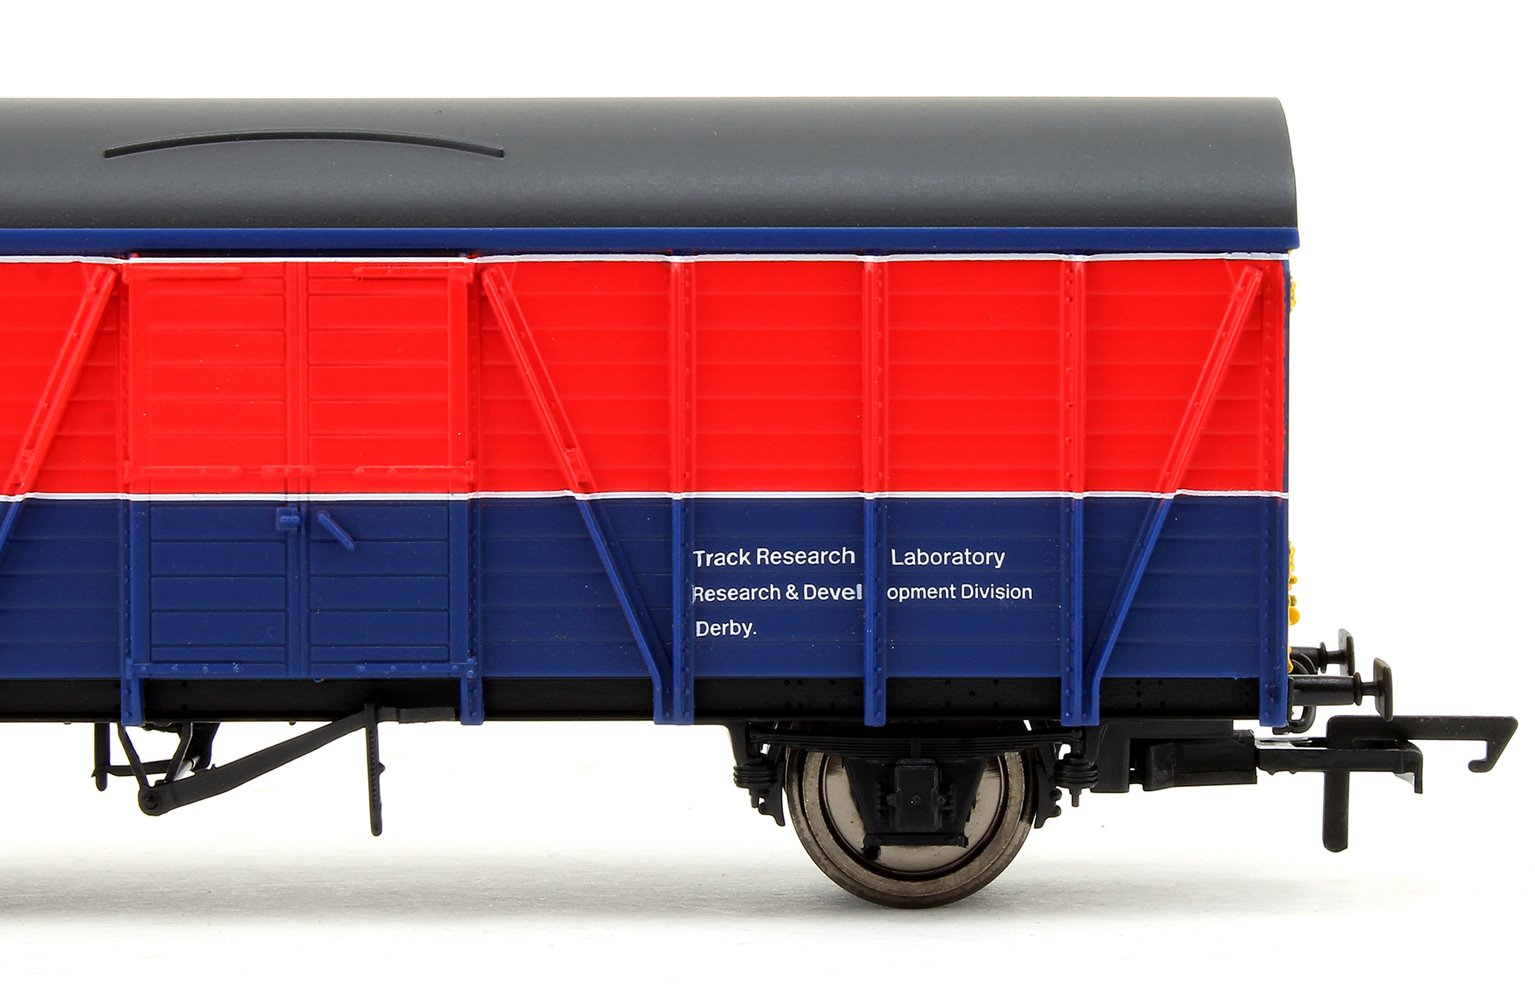 BR R&D Division, ex-LMS CCT Track Research Laboratory, RDB 975667